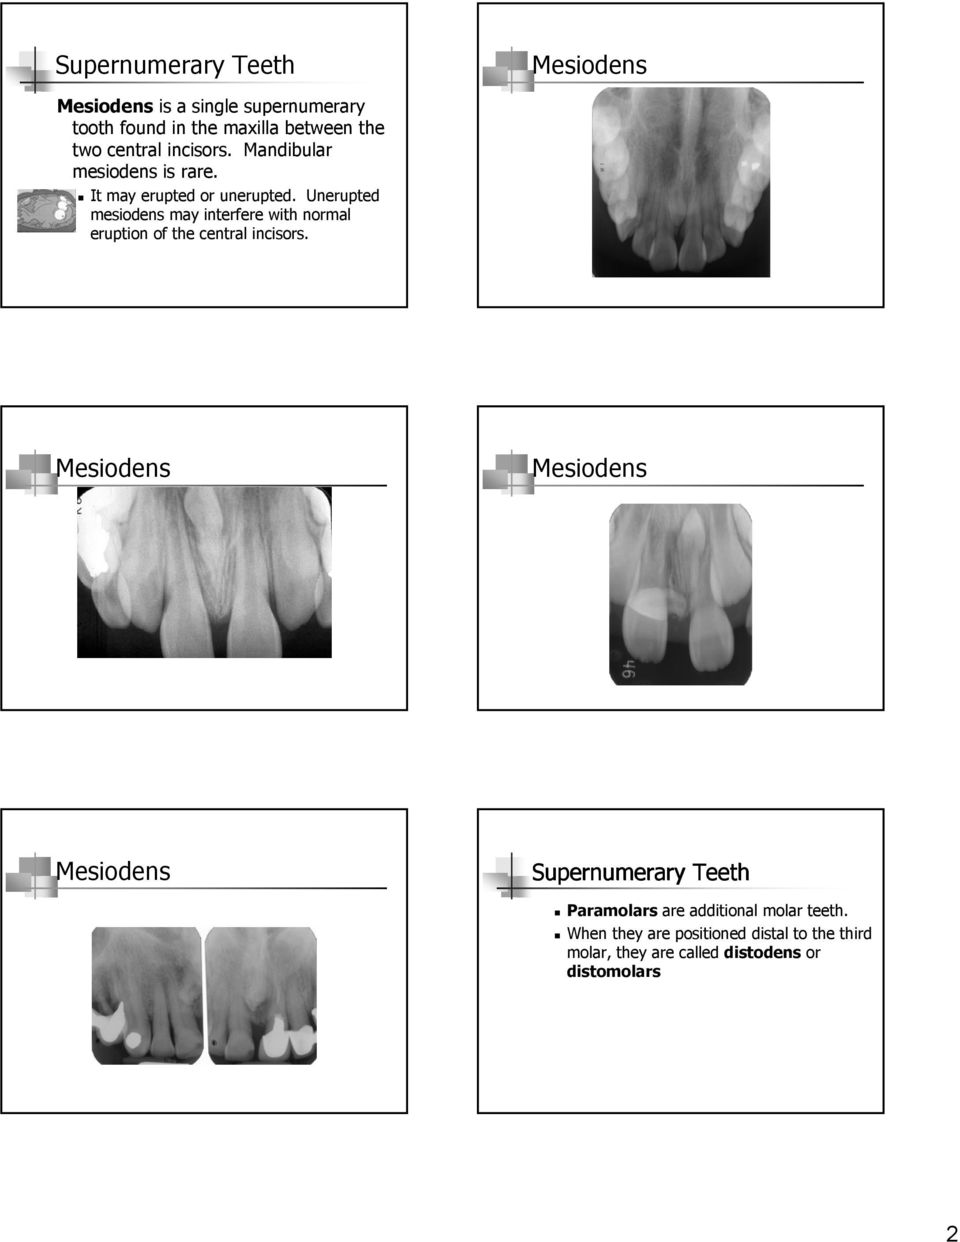 Unerupted mesiodens may interfere with normal eruption of the central incisors.